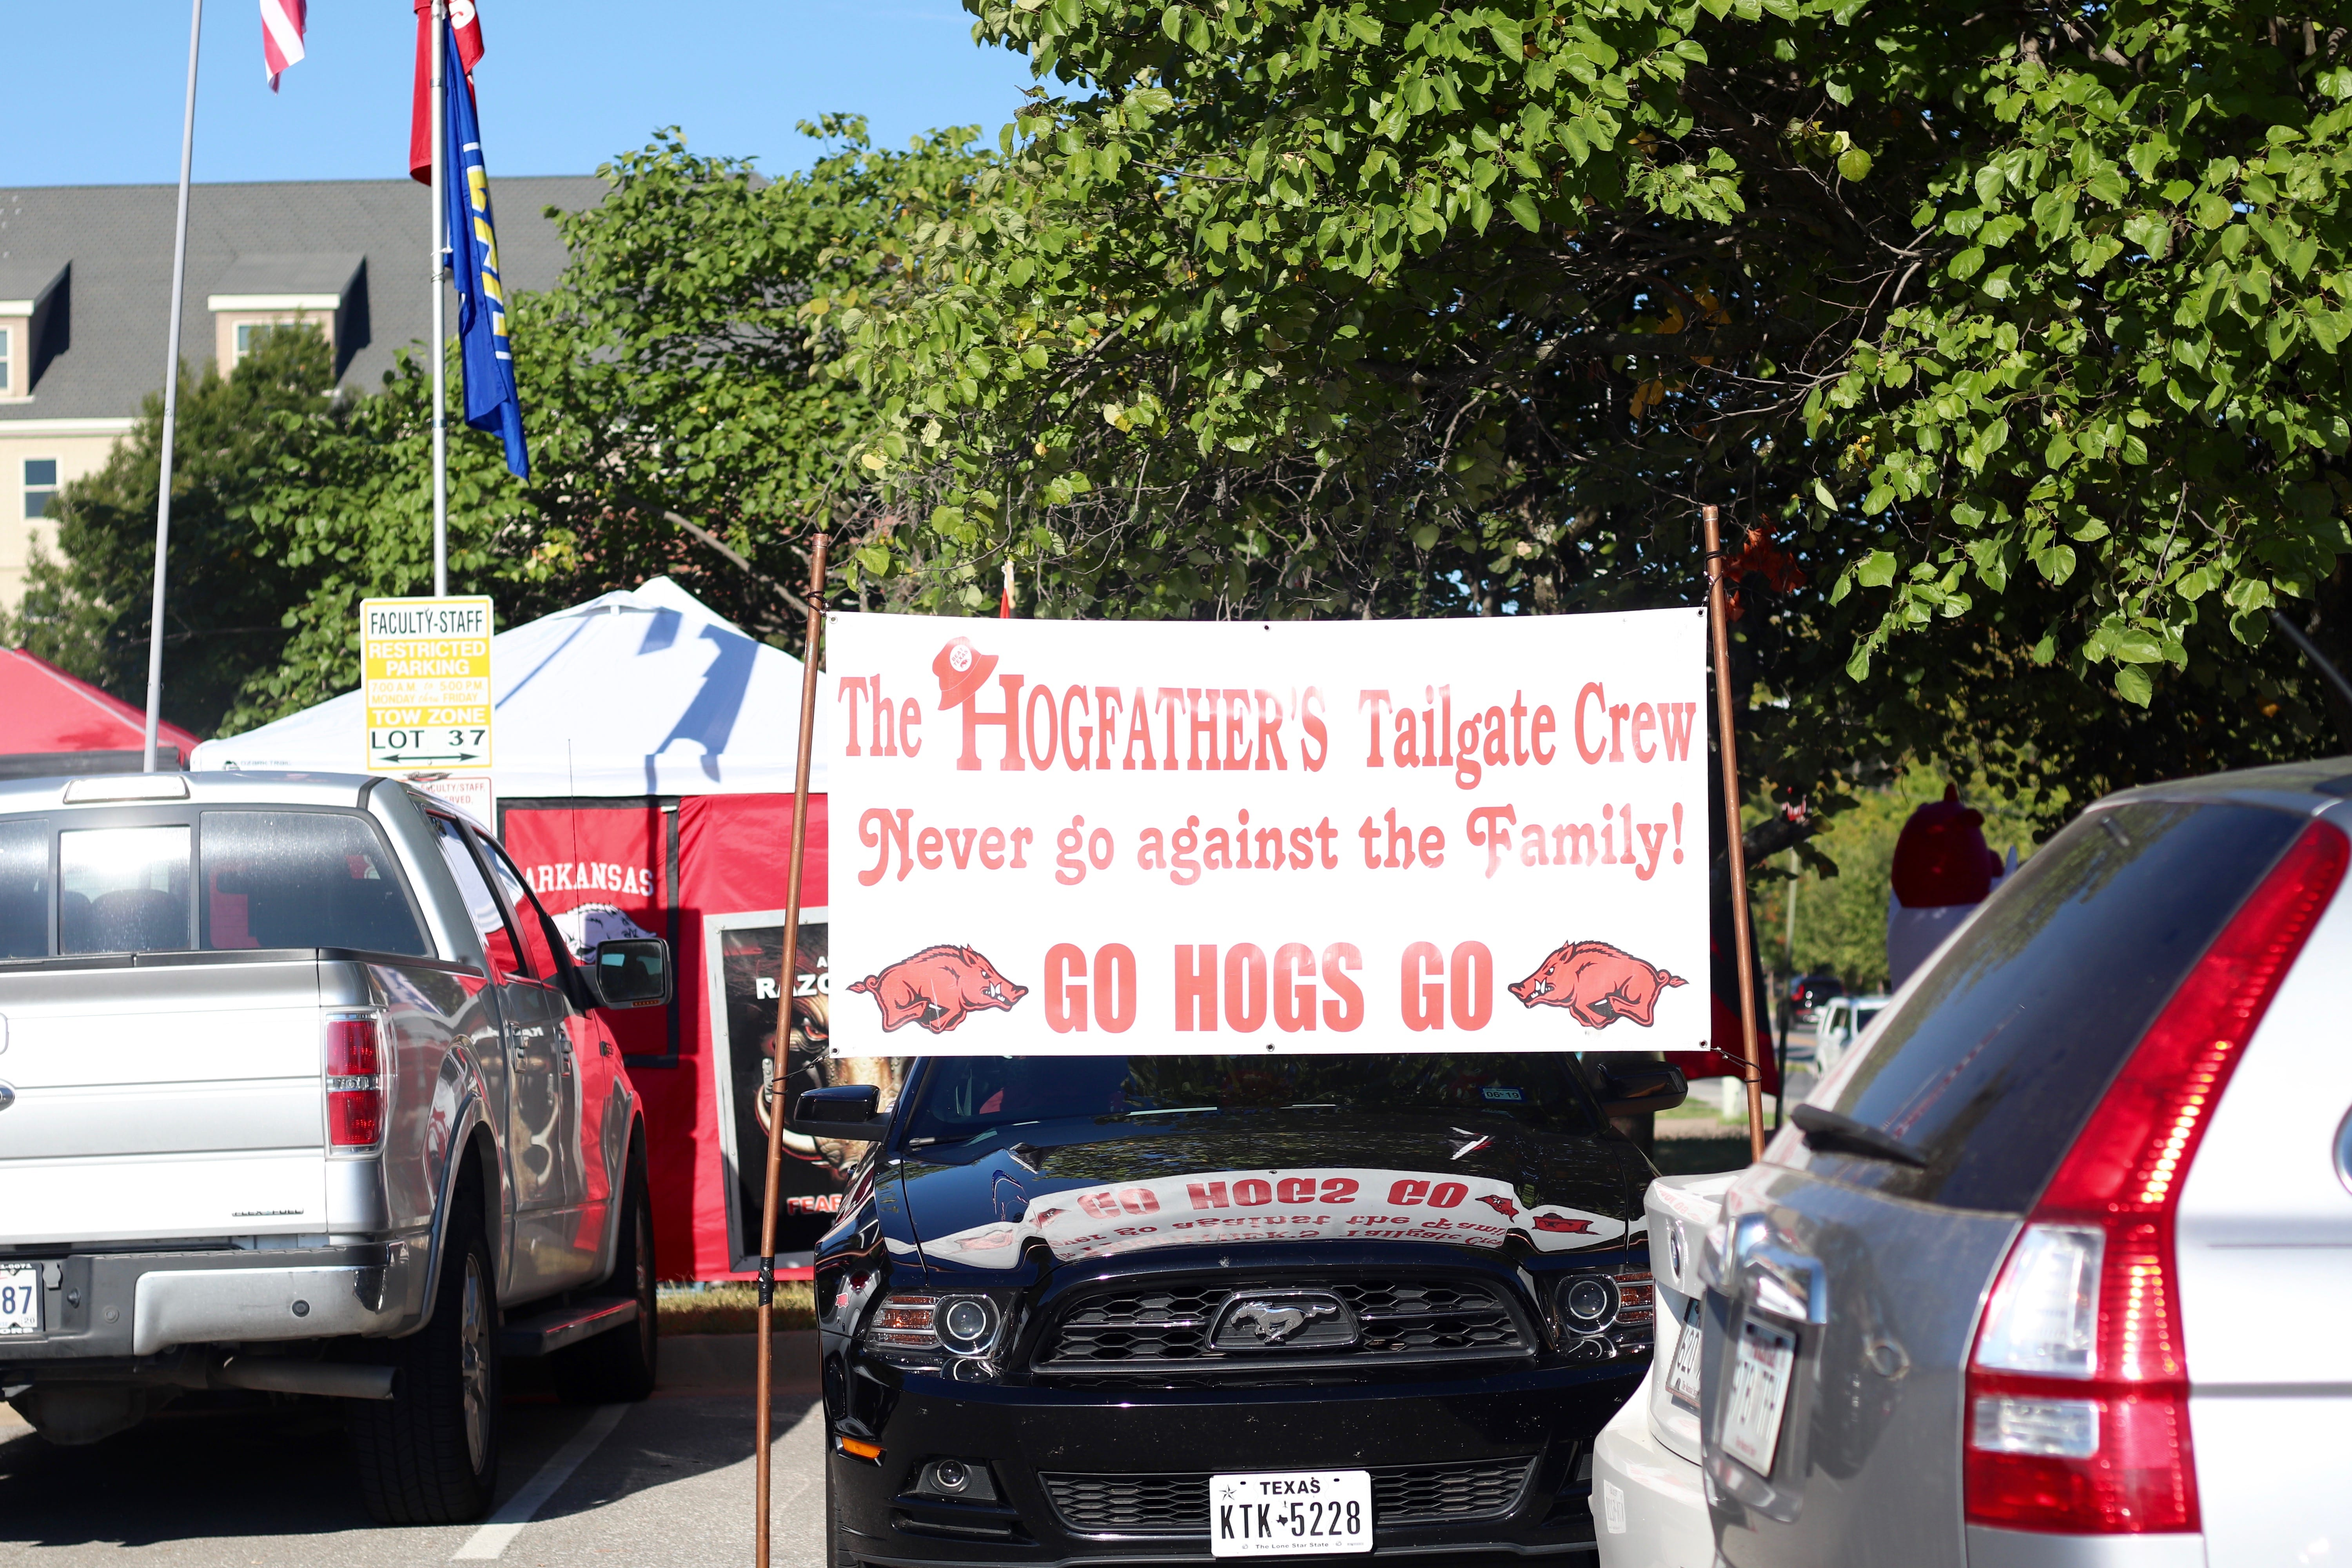 """A tailgate sign that reads """"The Hogfathers Tailgate Crew, Never go against the Family, Go Hogs Go!"""""""